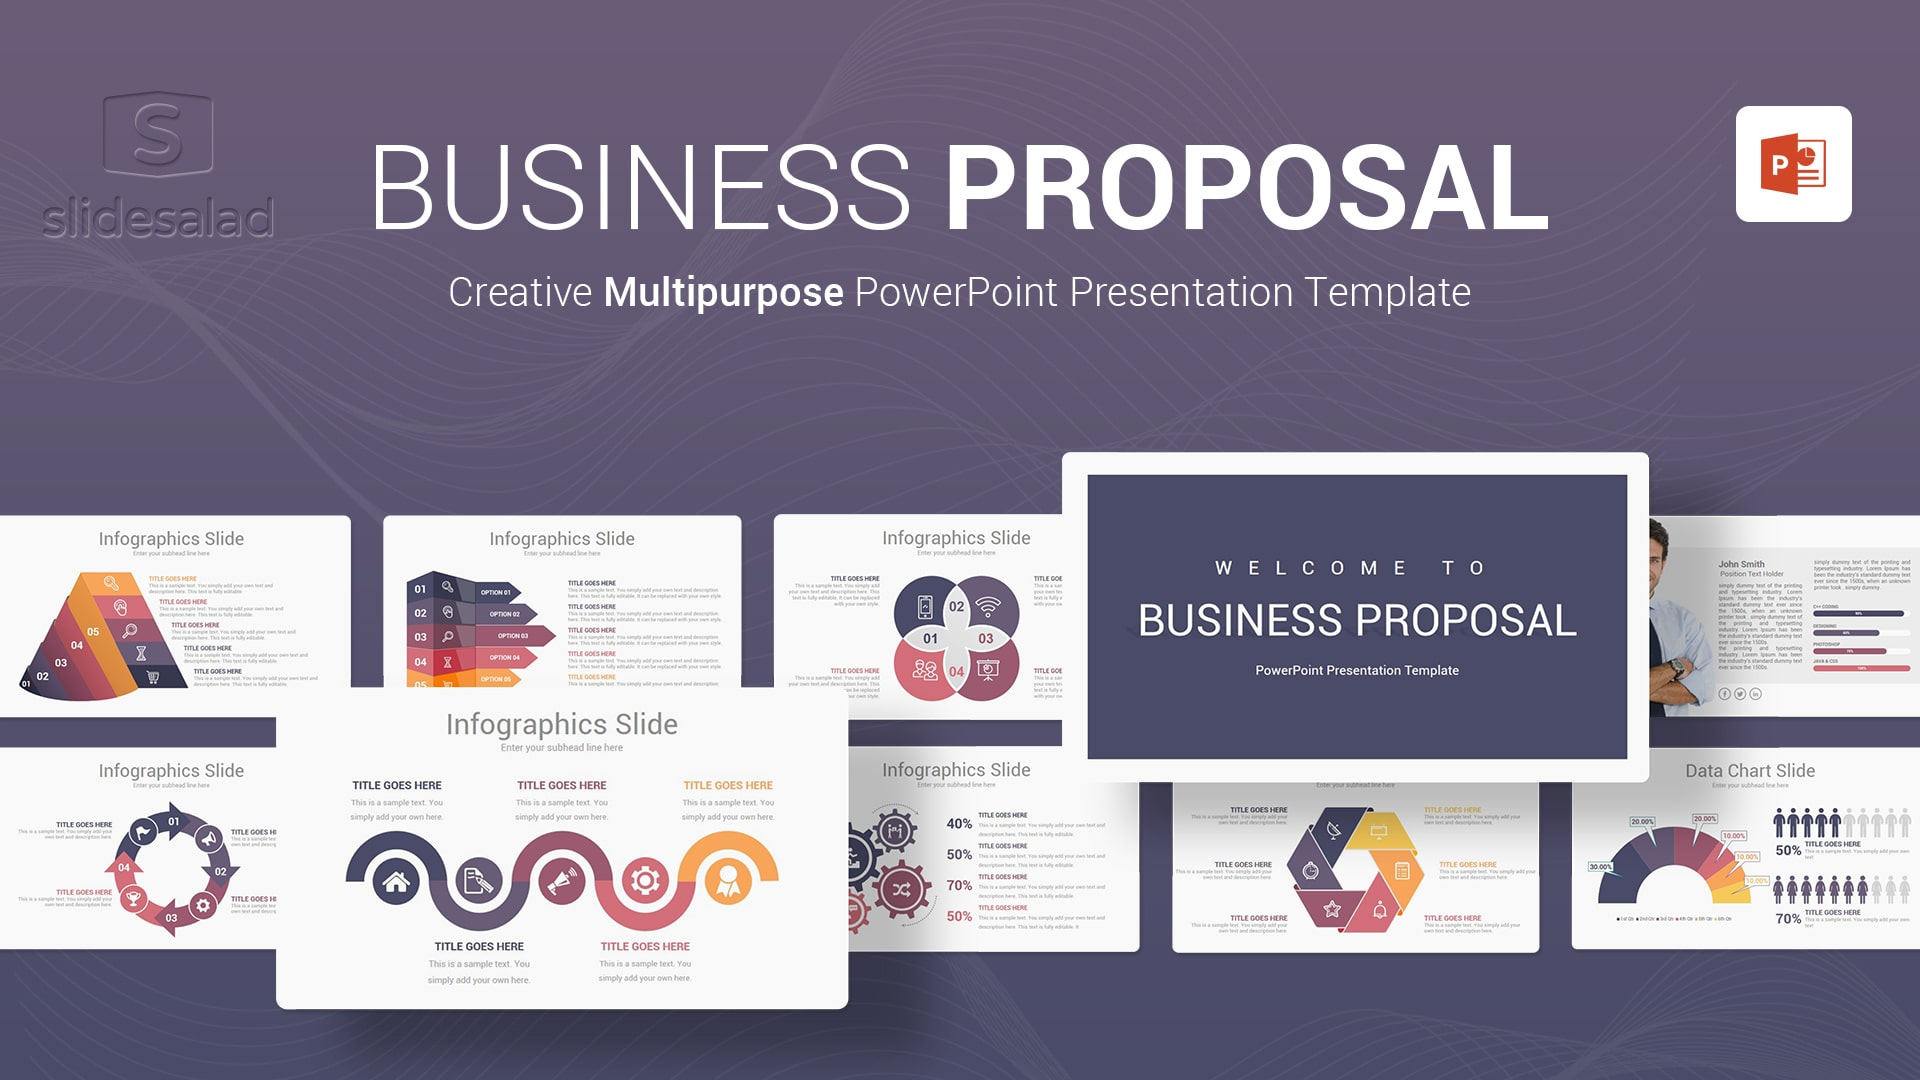 Business Proposal PowerPoint Presentation Template - High-Resolution Slideshow Webinar PowerPoint Template